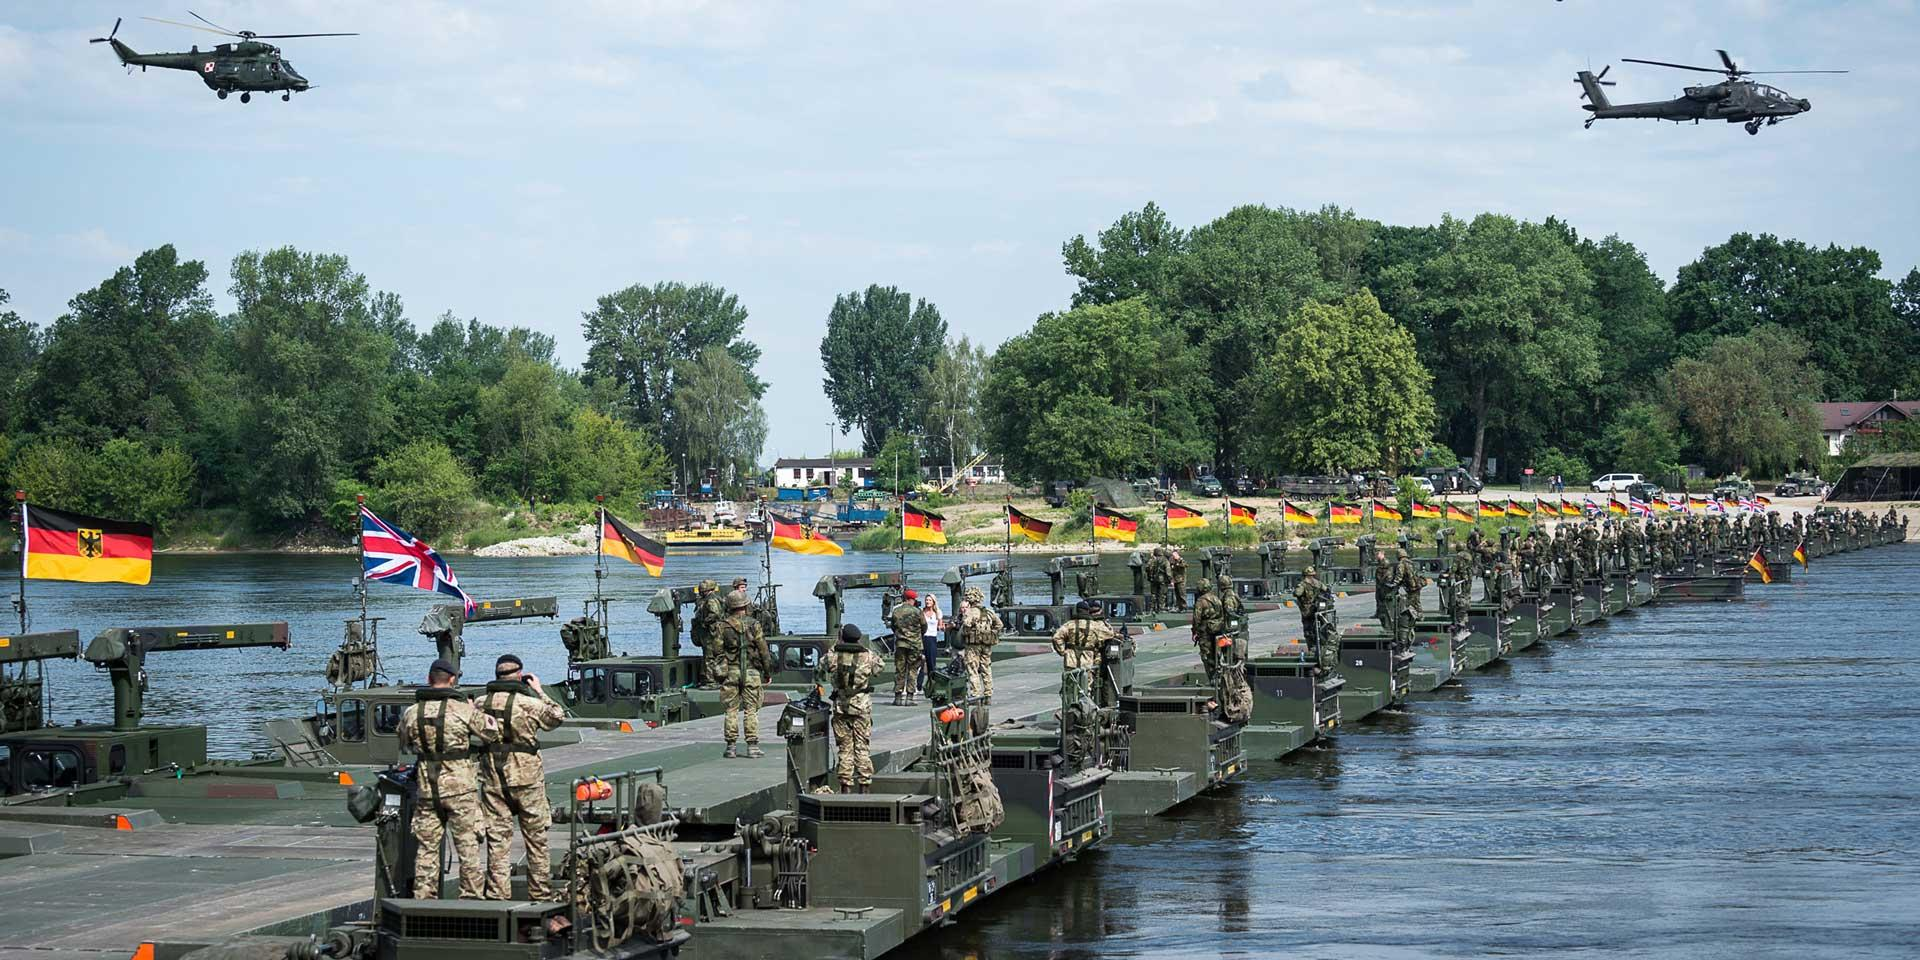 British, German and other NATO allies take part in Exercise Anakonda, 2016